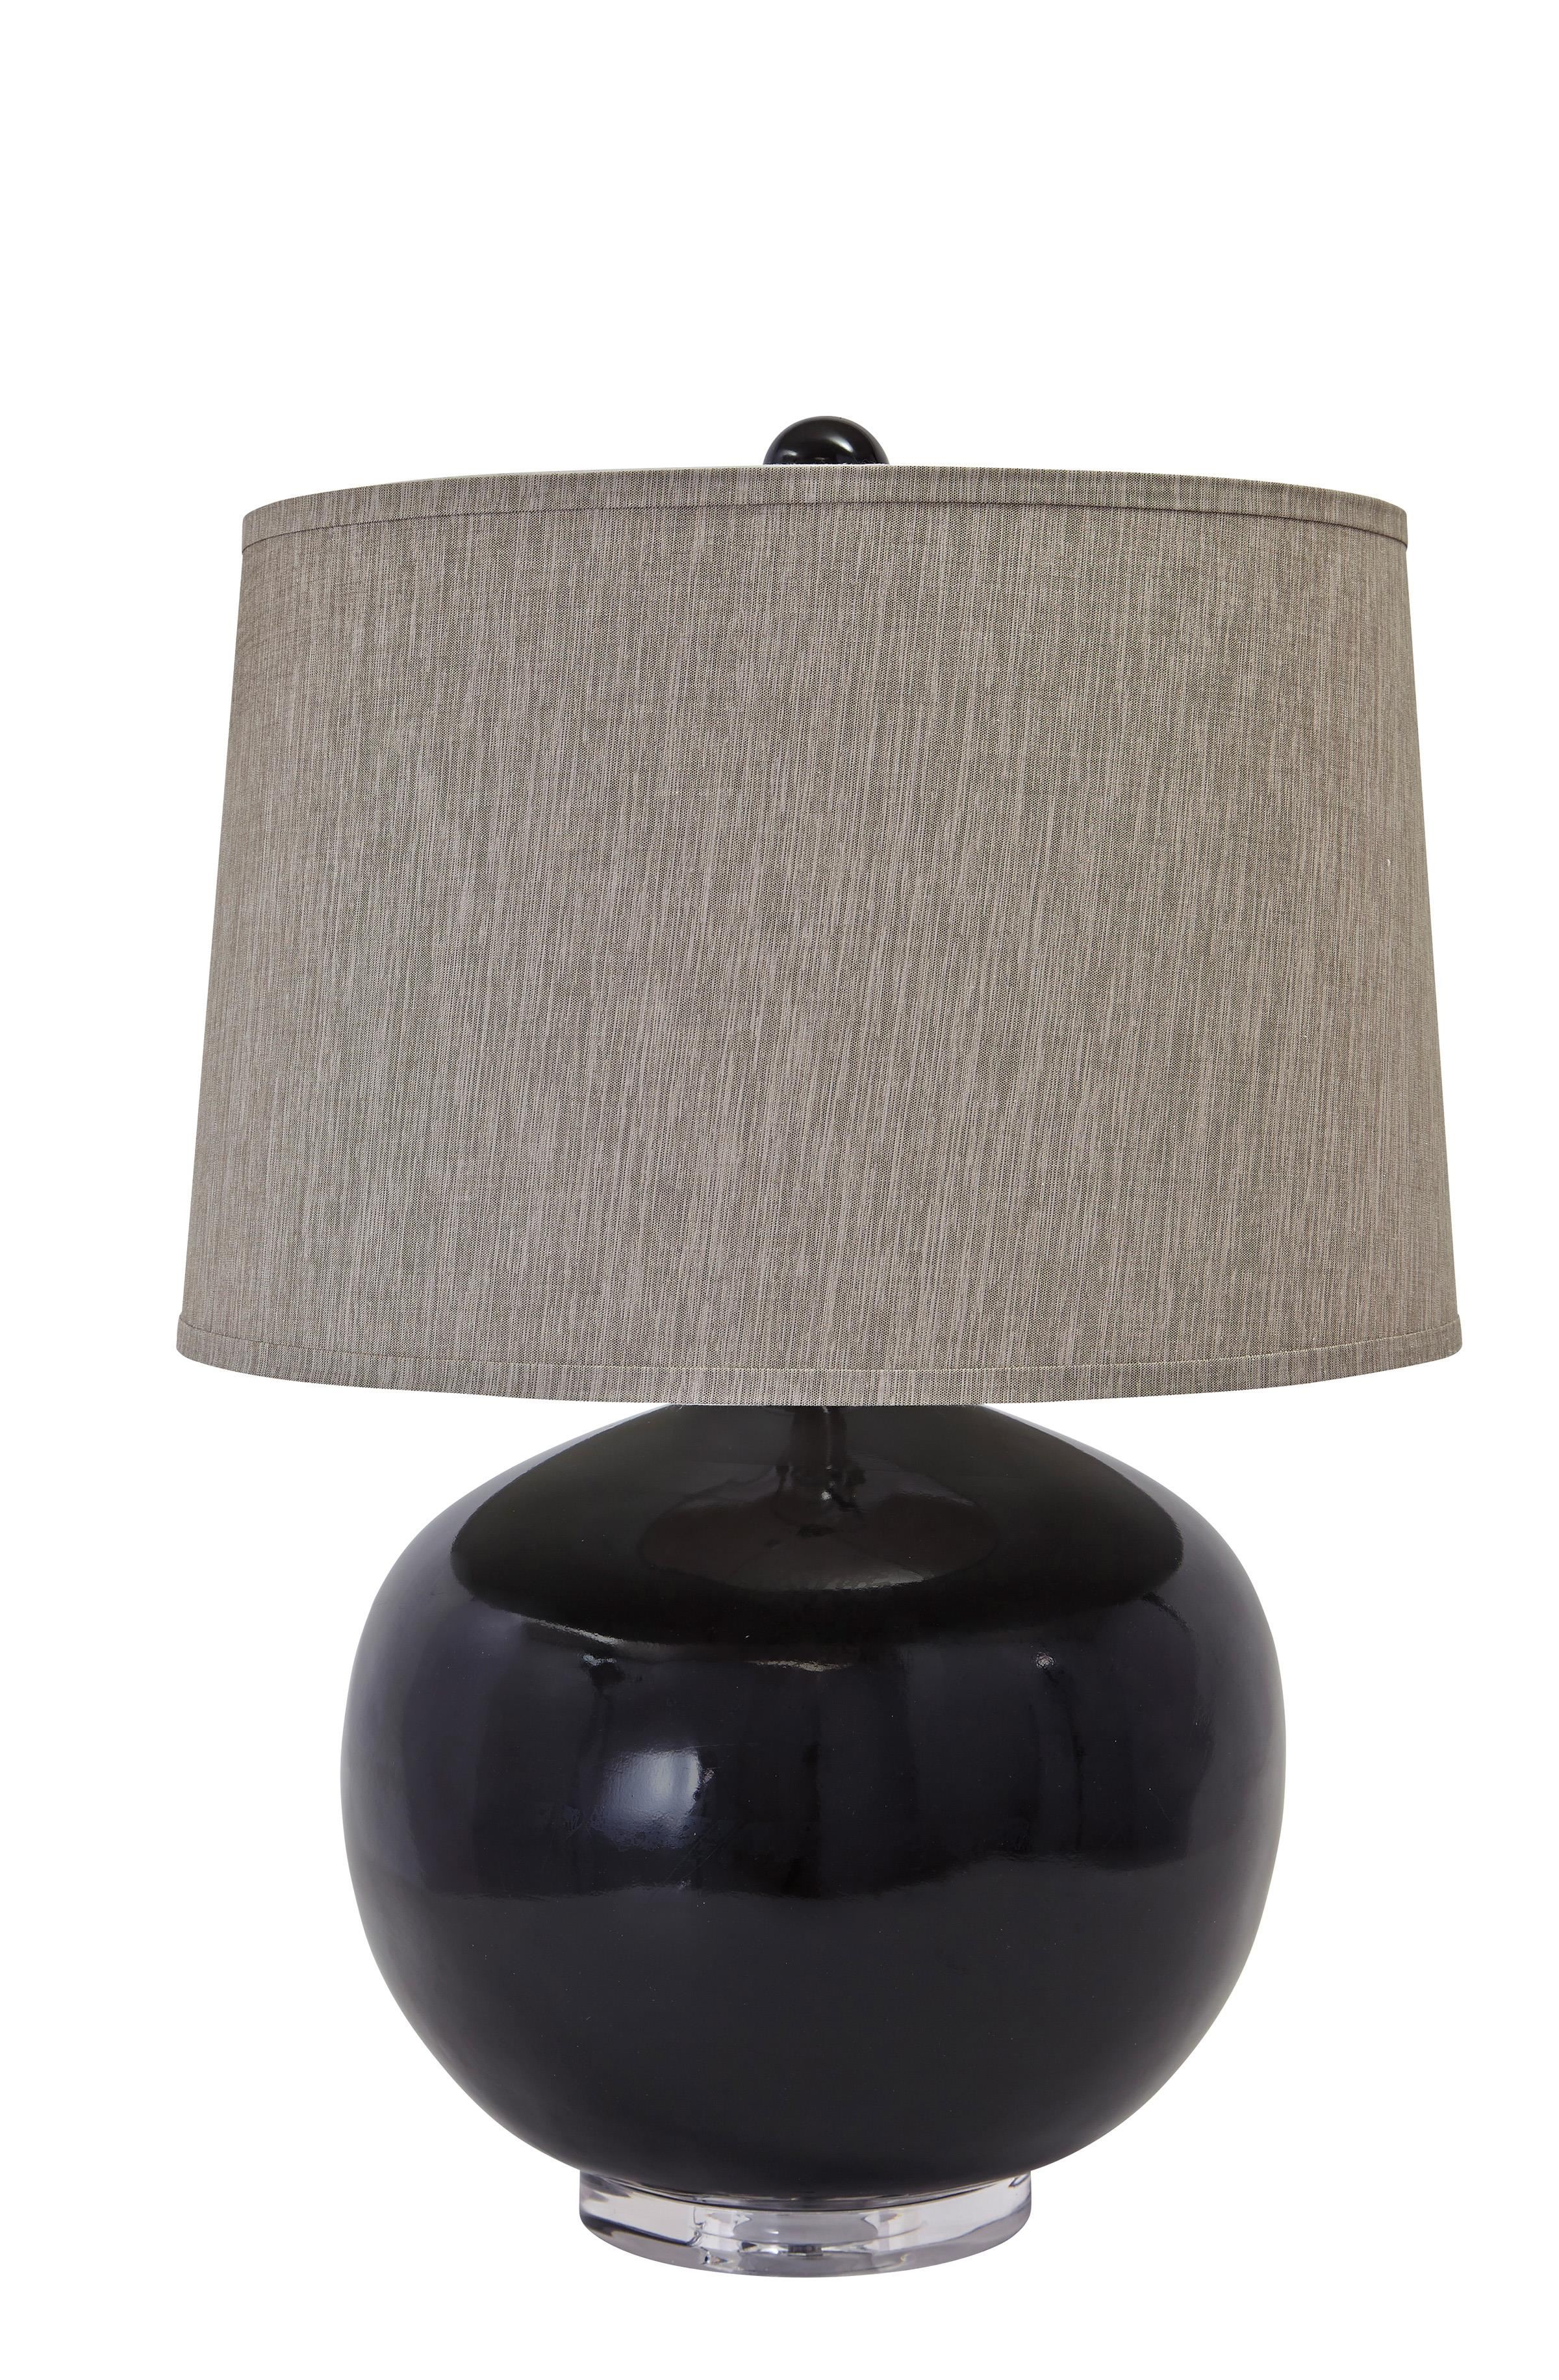 Signature Design by Ashley Lamps - Contemporary Poly Table Lamp  - Item Number: L235414